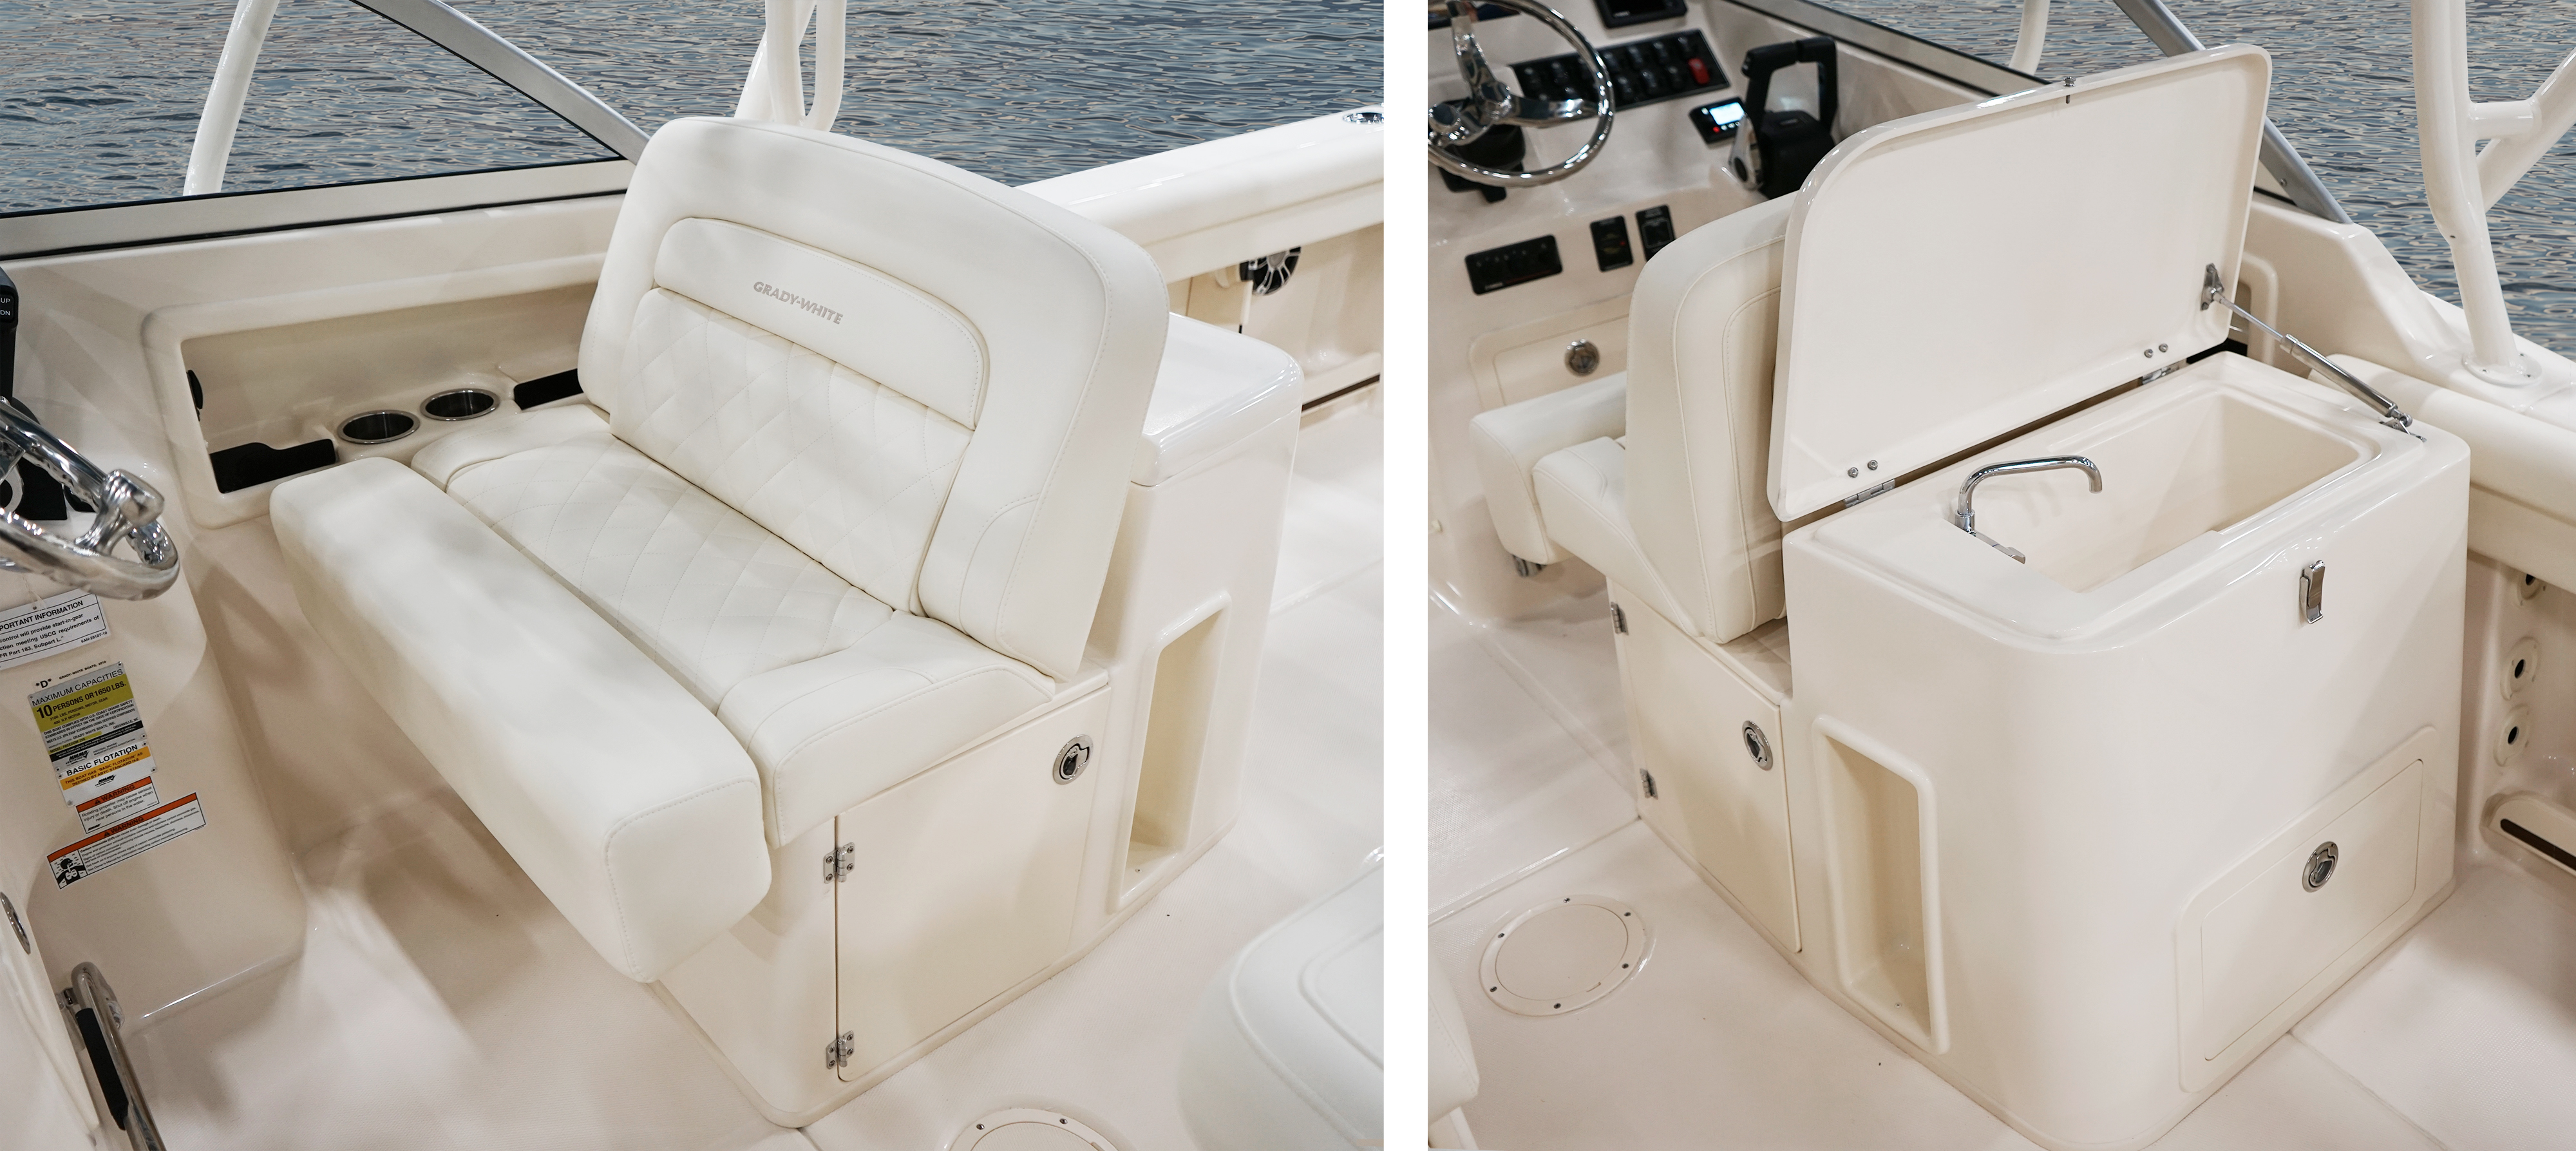 Grady-White Freedom 255 25-foot dual console helm bench seat and wet bar